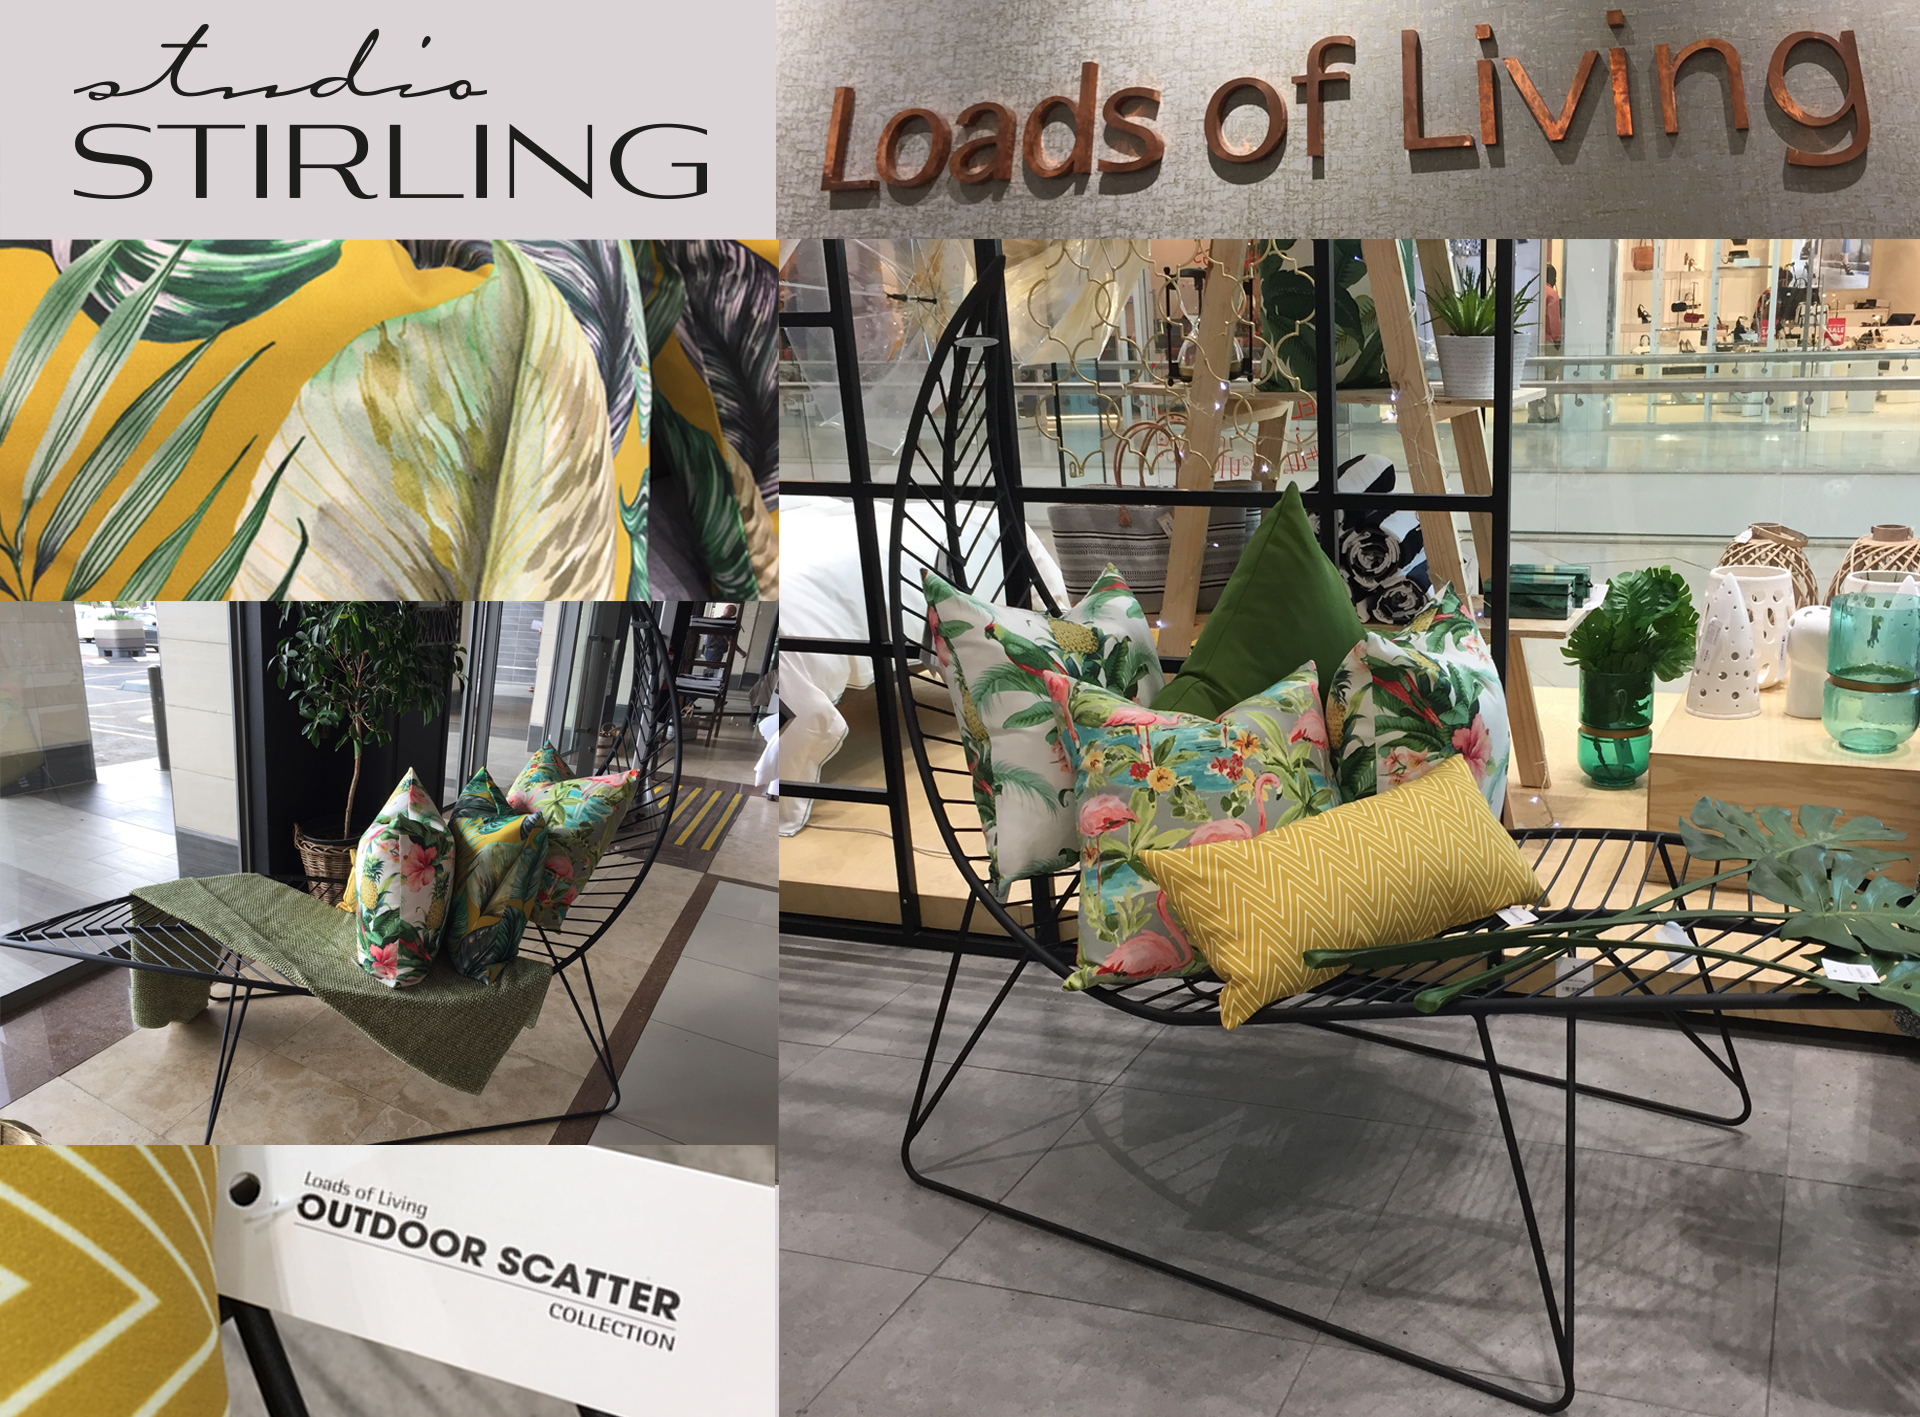 Hanging-swing-chairs-Loads-of-Living-blog